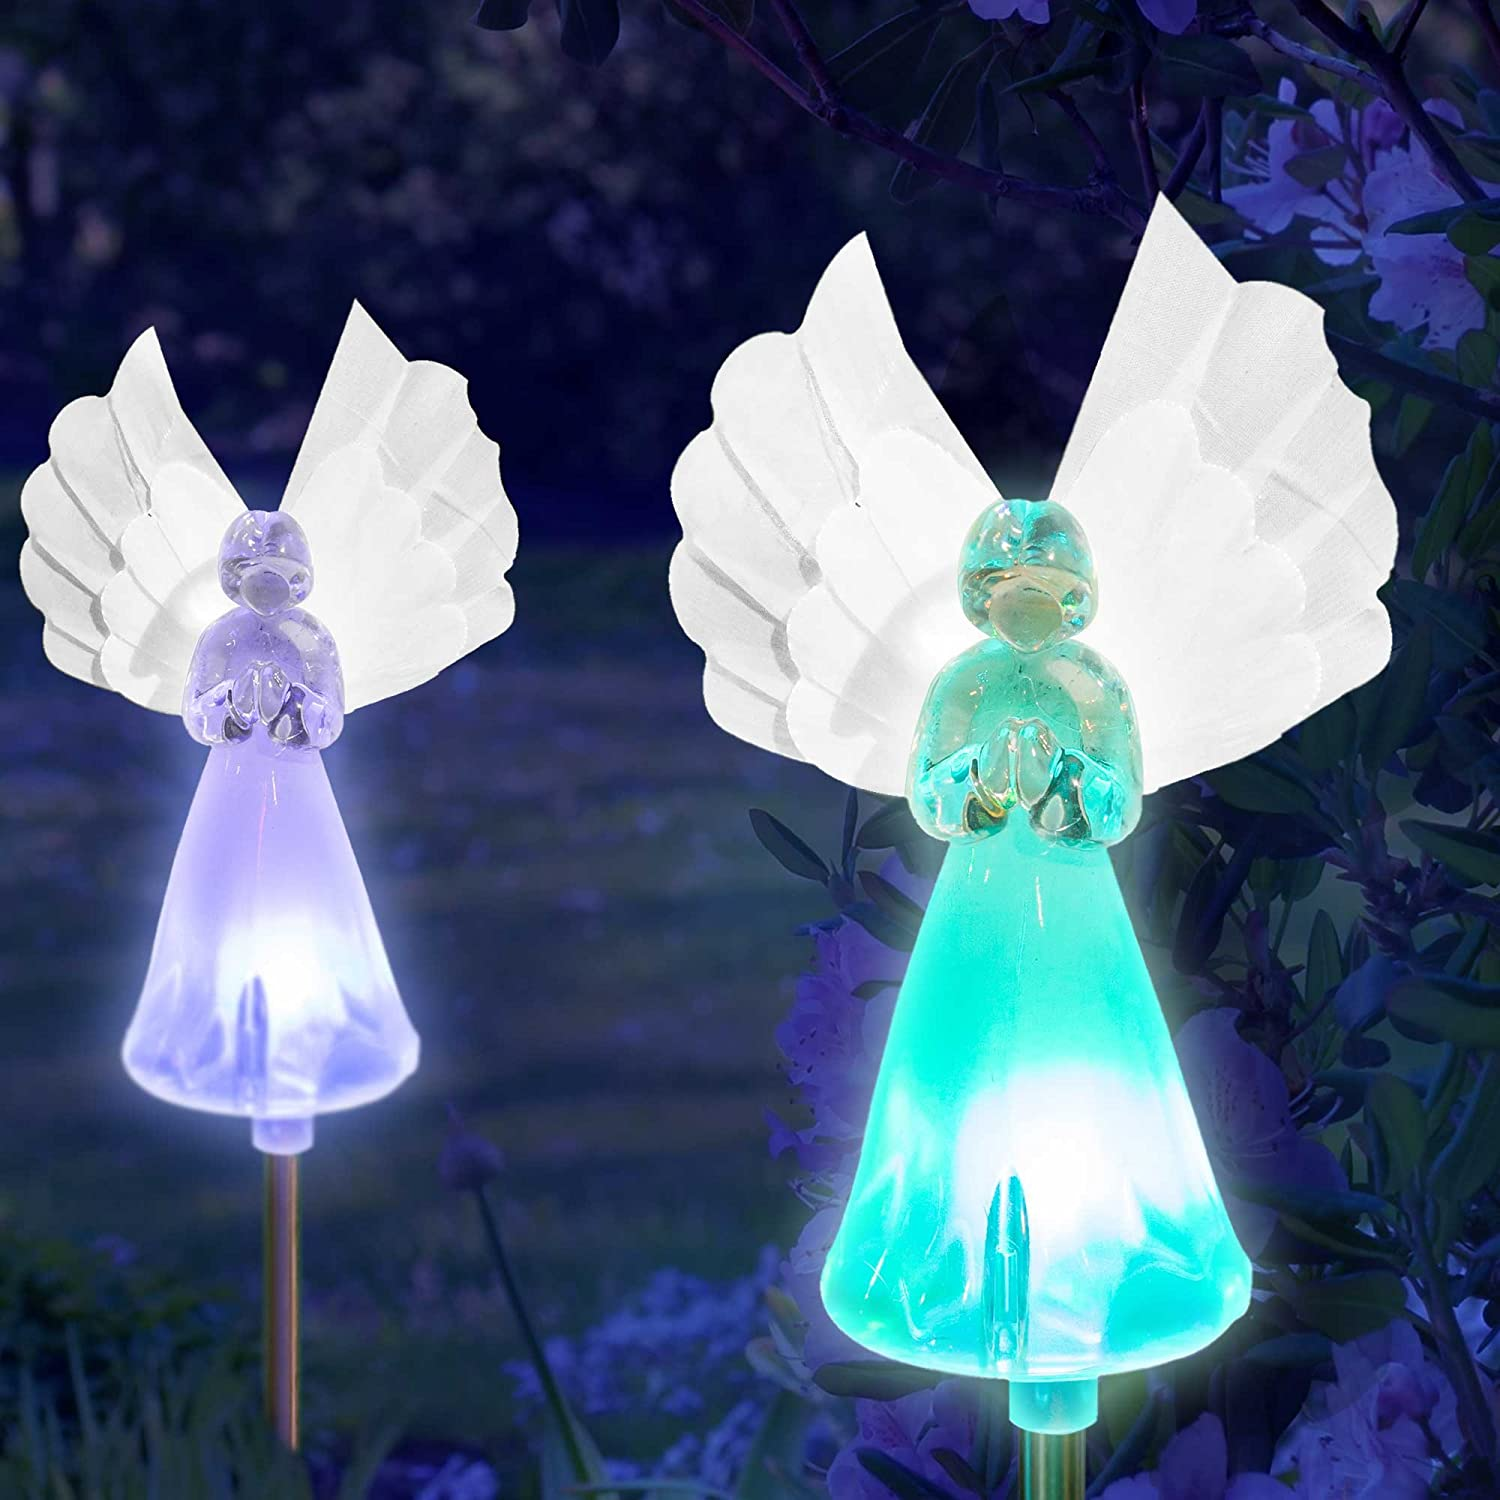 decor solar fairy decorations mason decoration lawn outdoor rose view garden new arrival light flower lantern of jar lighting